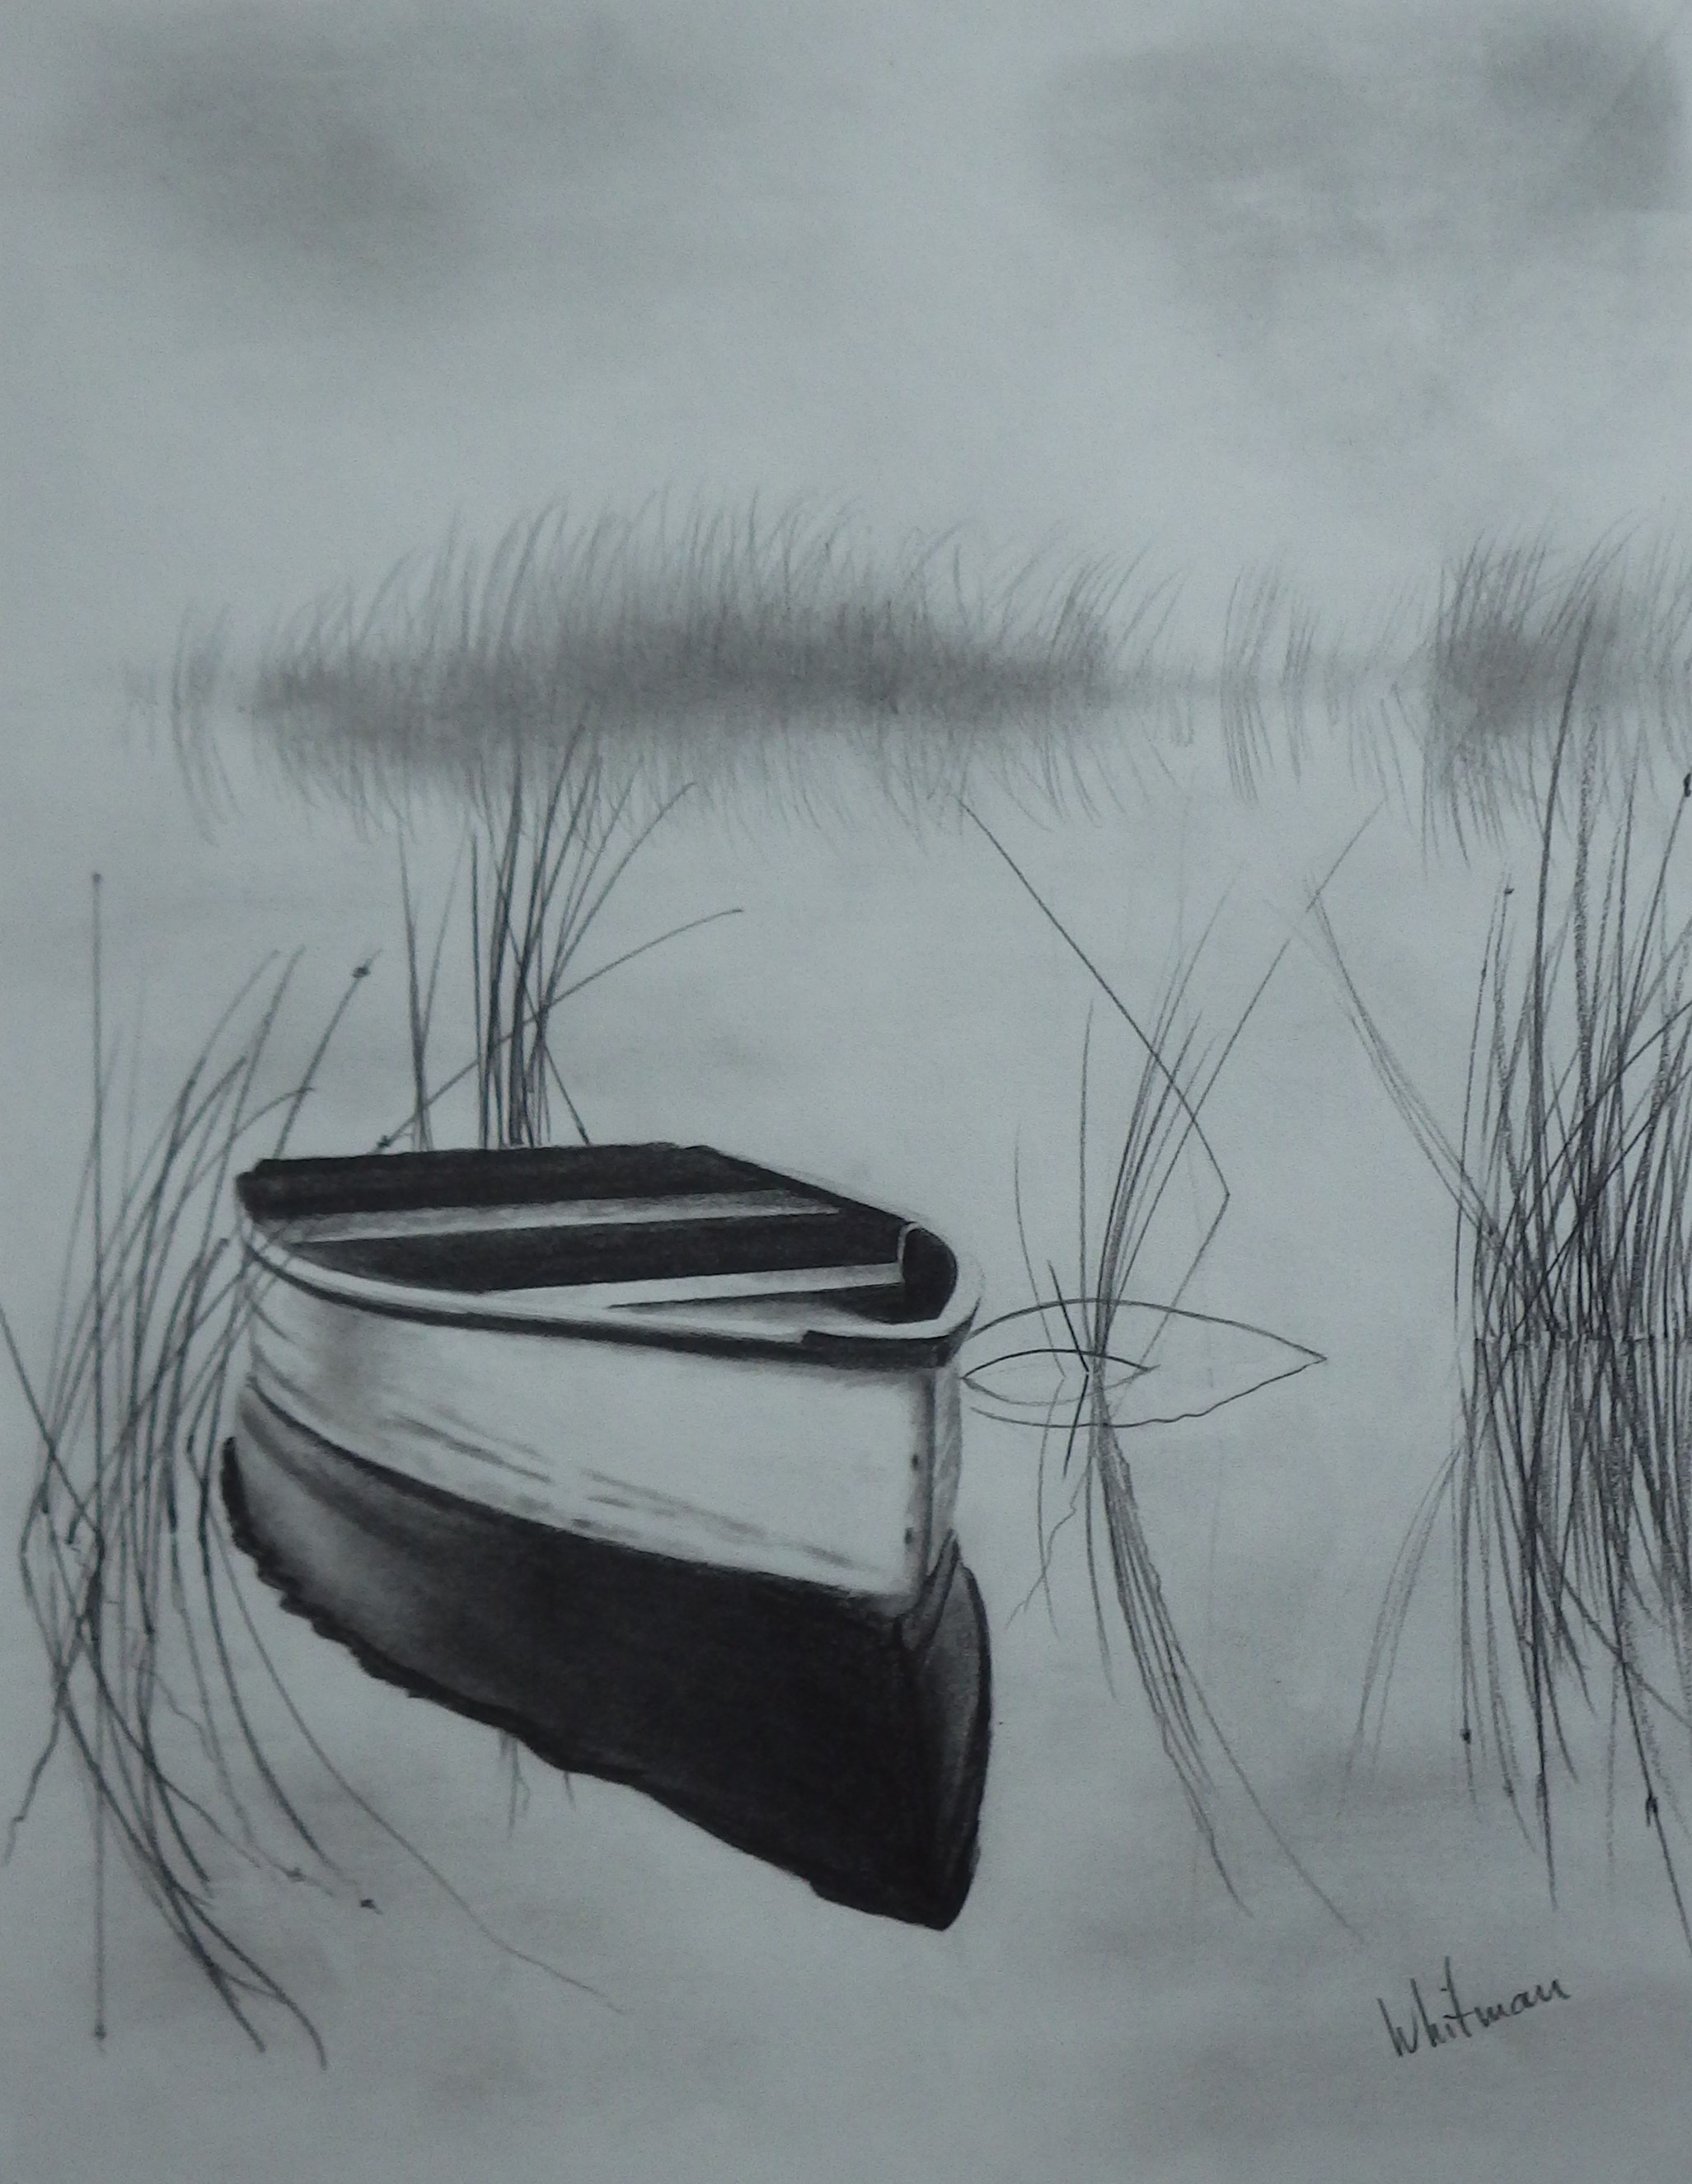 Drawn scenery boat Lake graphite pencil reflections the